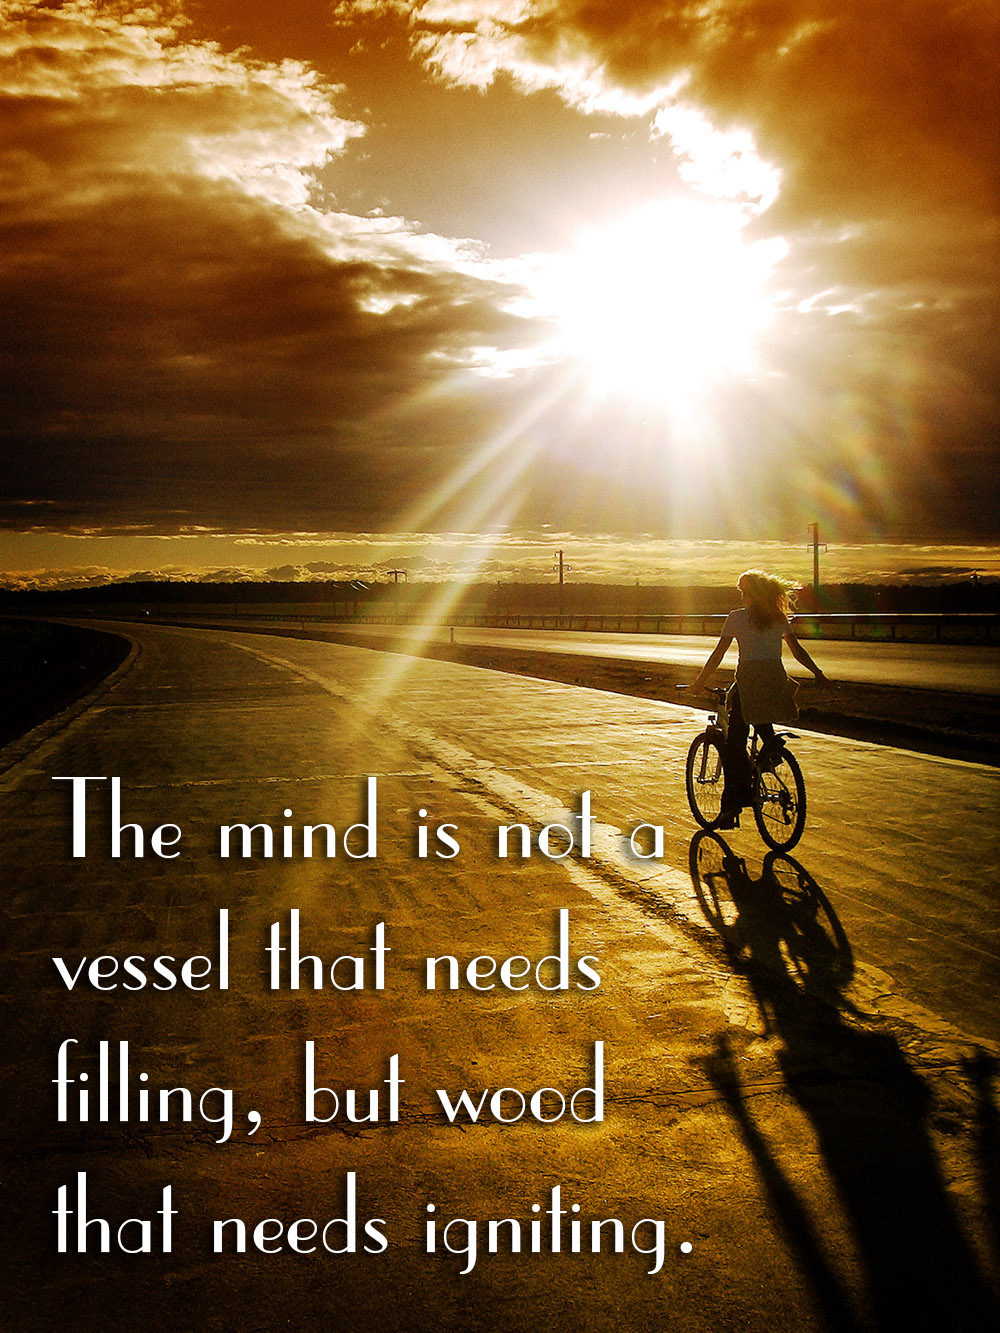 The mind is not a vessel that needs filling